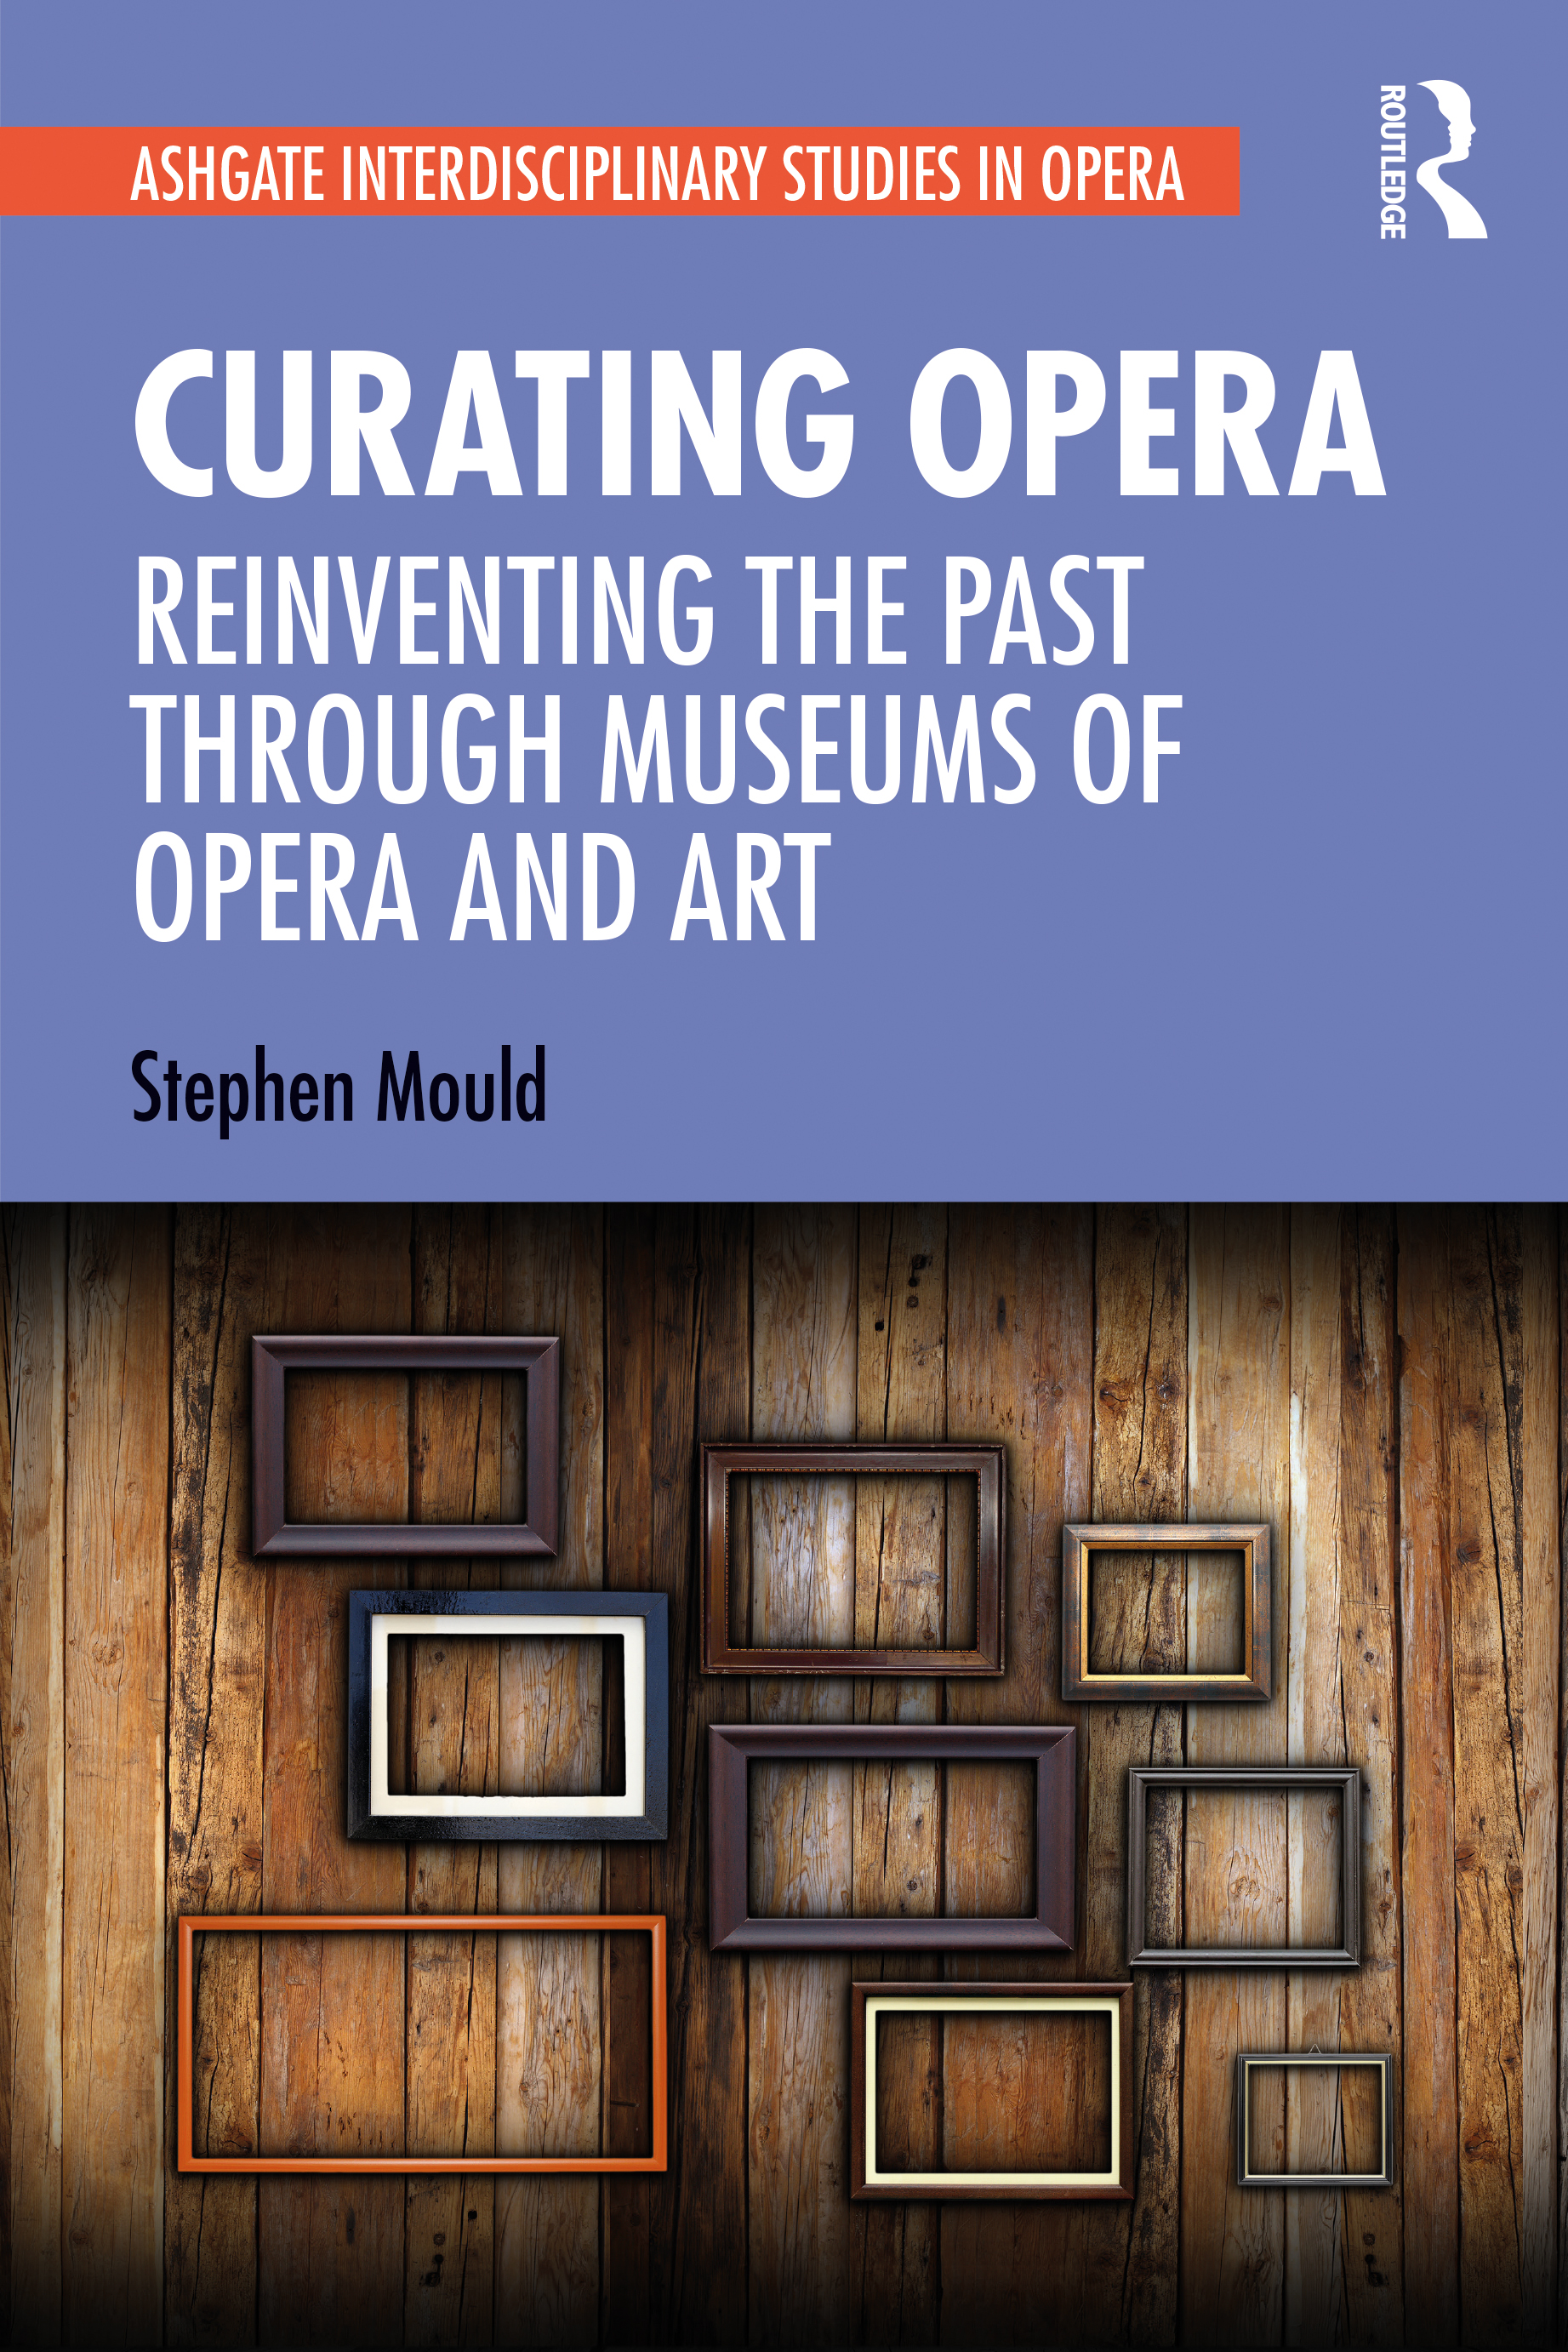 Towards the curation of opera